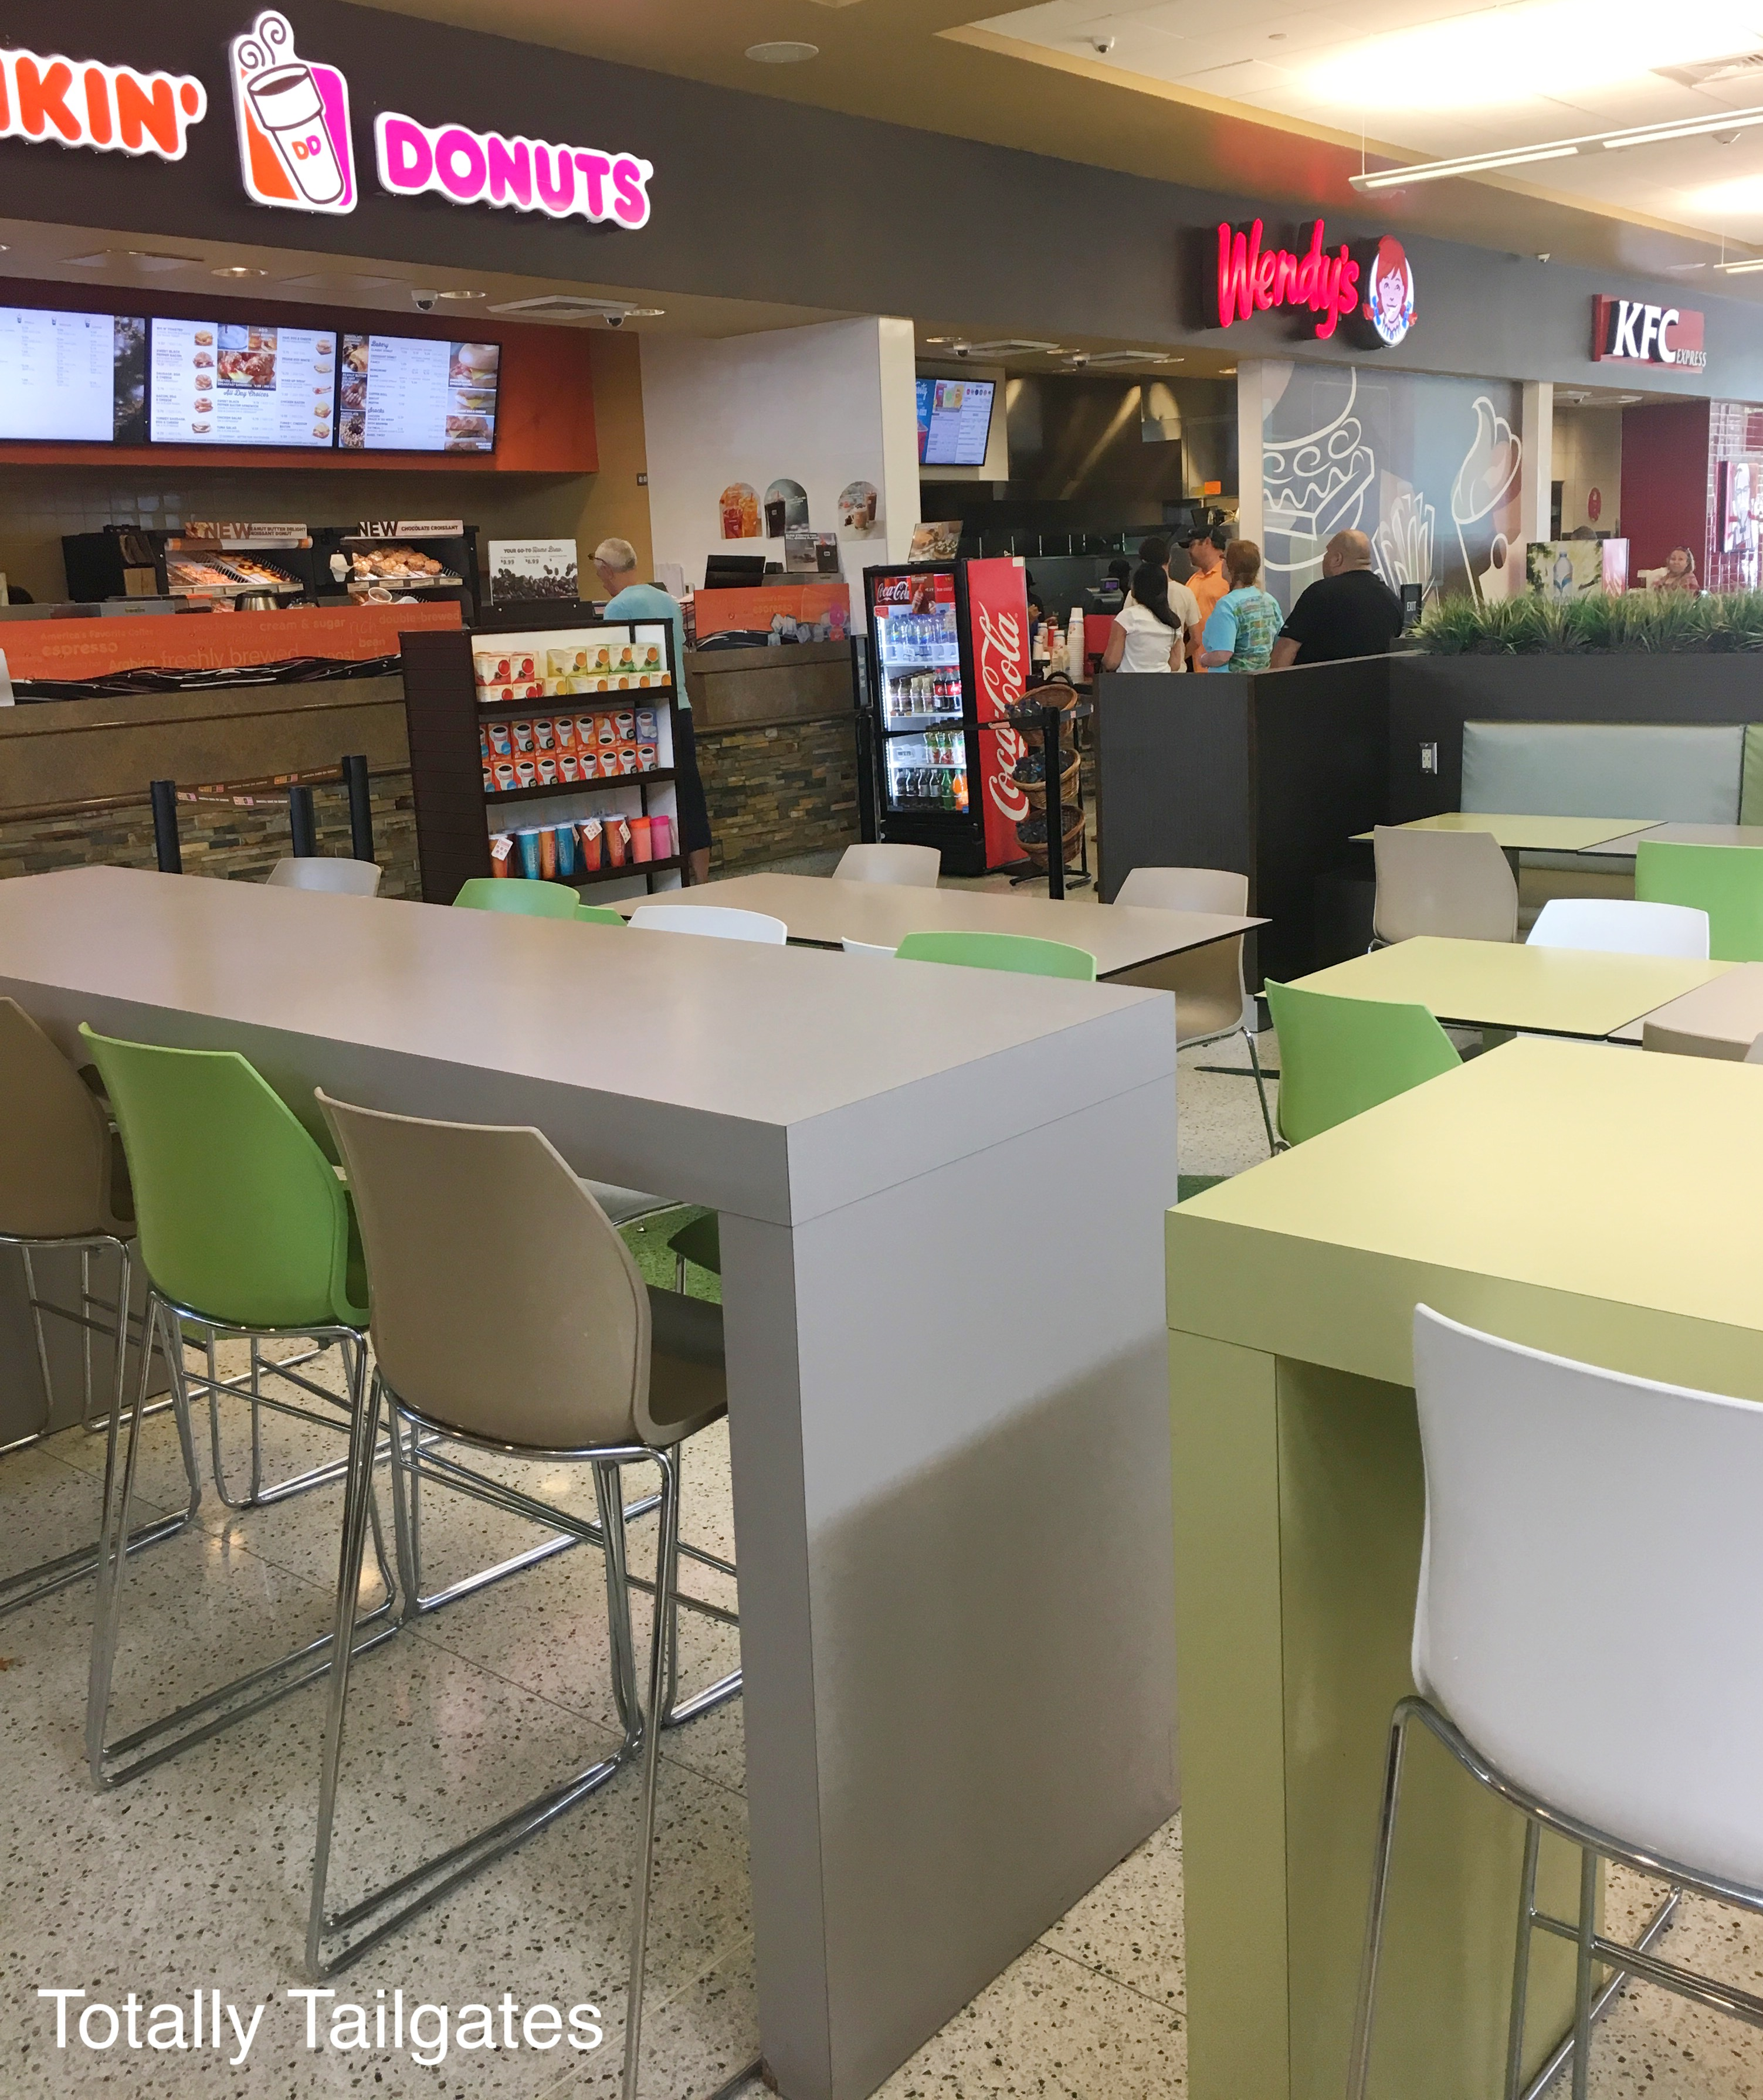 Travel review: Florida Turnpike Rest stop